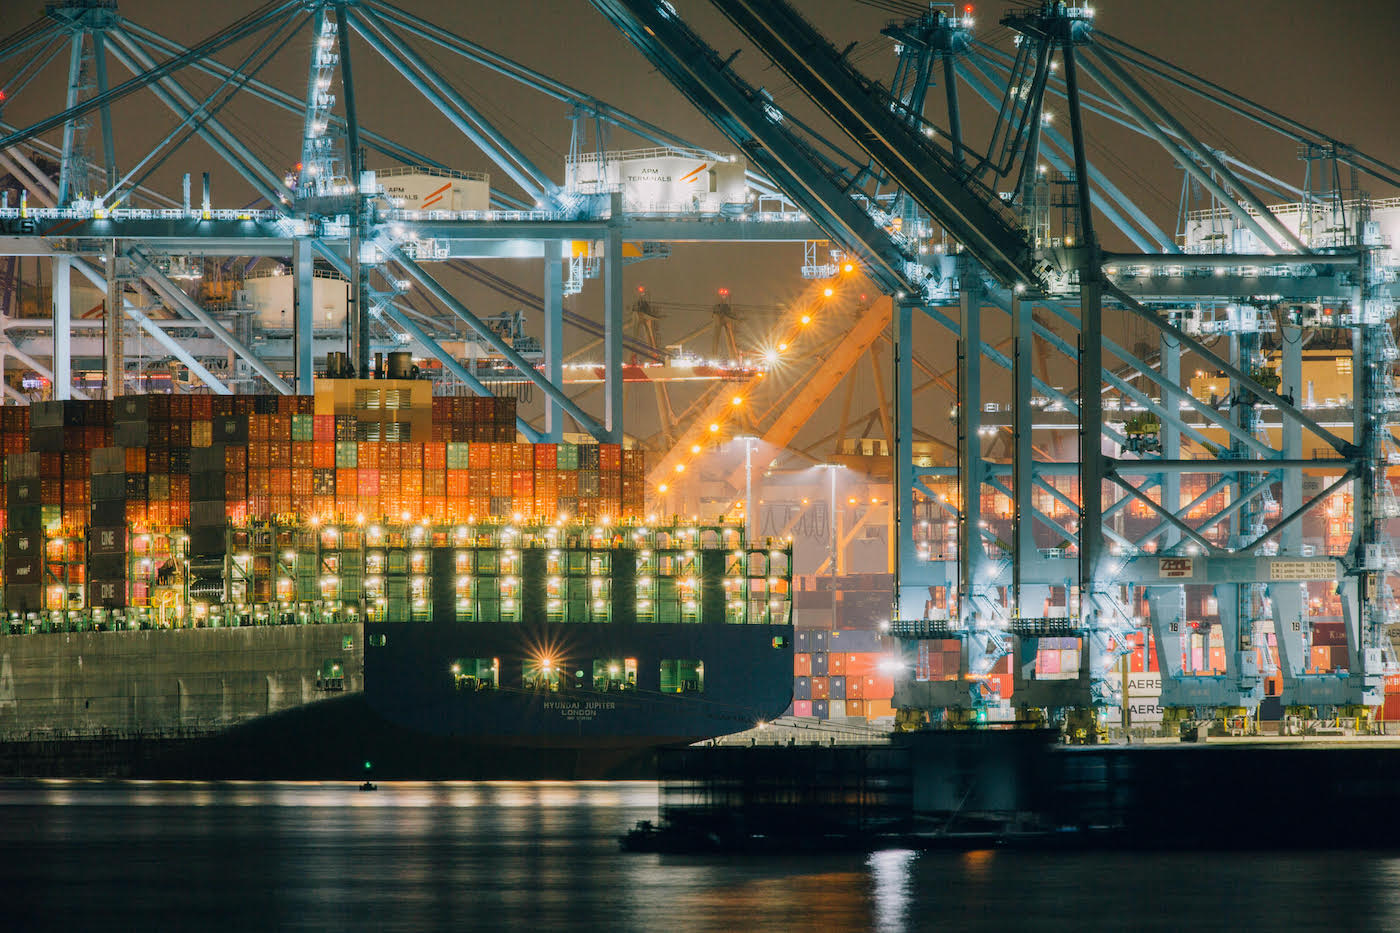 Transport and Logistics for a Post-Covid, Net-Zero World